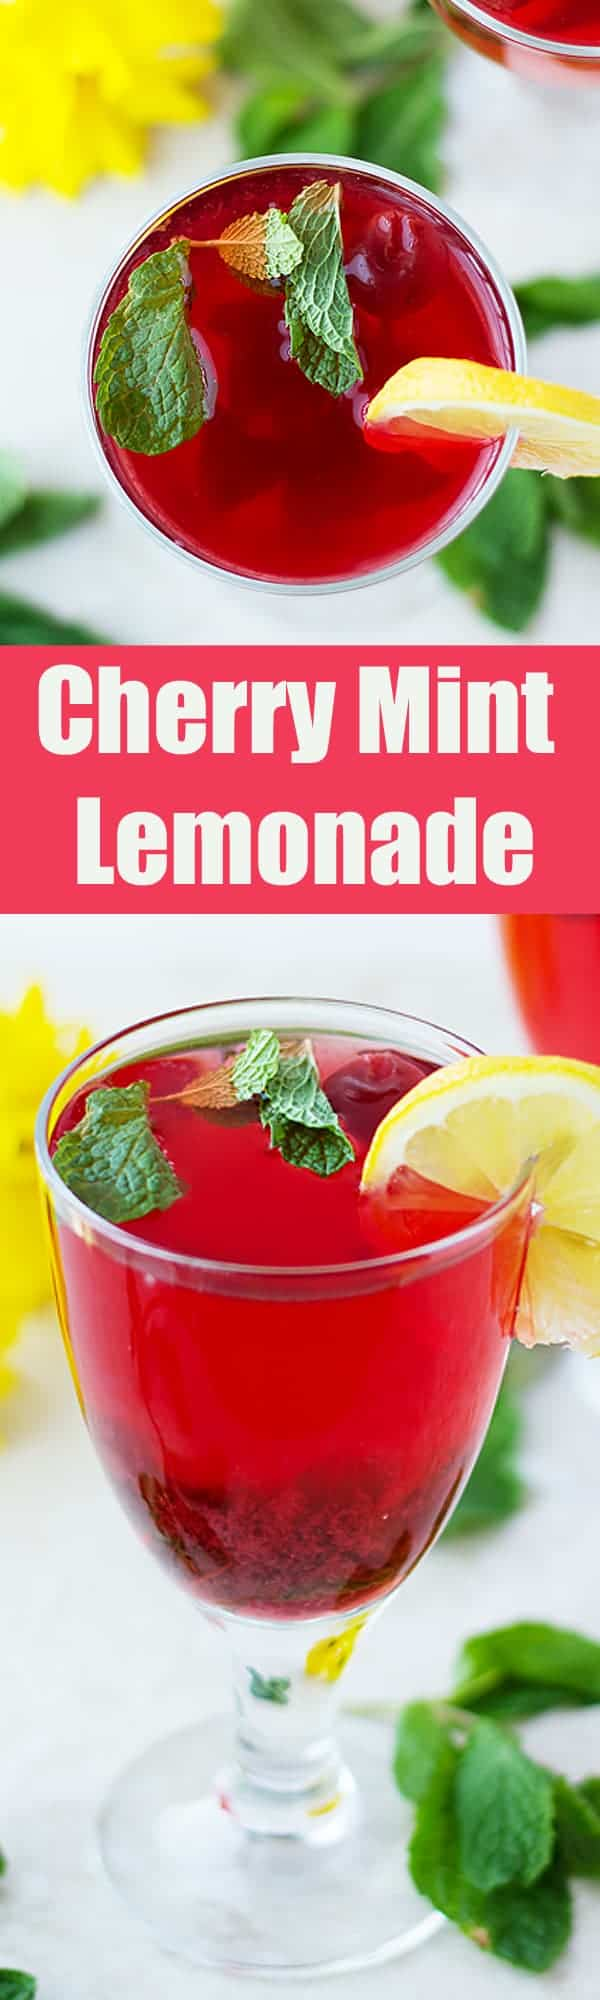 Cherry Mint Lemonade - non-alcoholic easy to make homemade lemonade with frozen cherries and fresh mint herb. Very refreshing drink recipe by ilonaspassion.com I @ilonaspassion